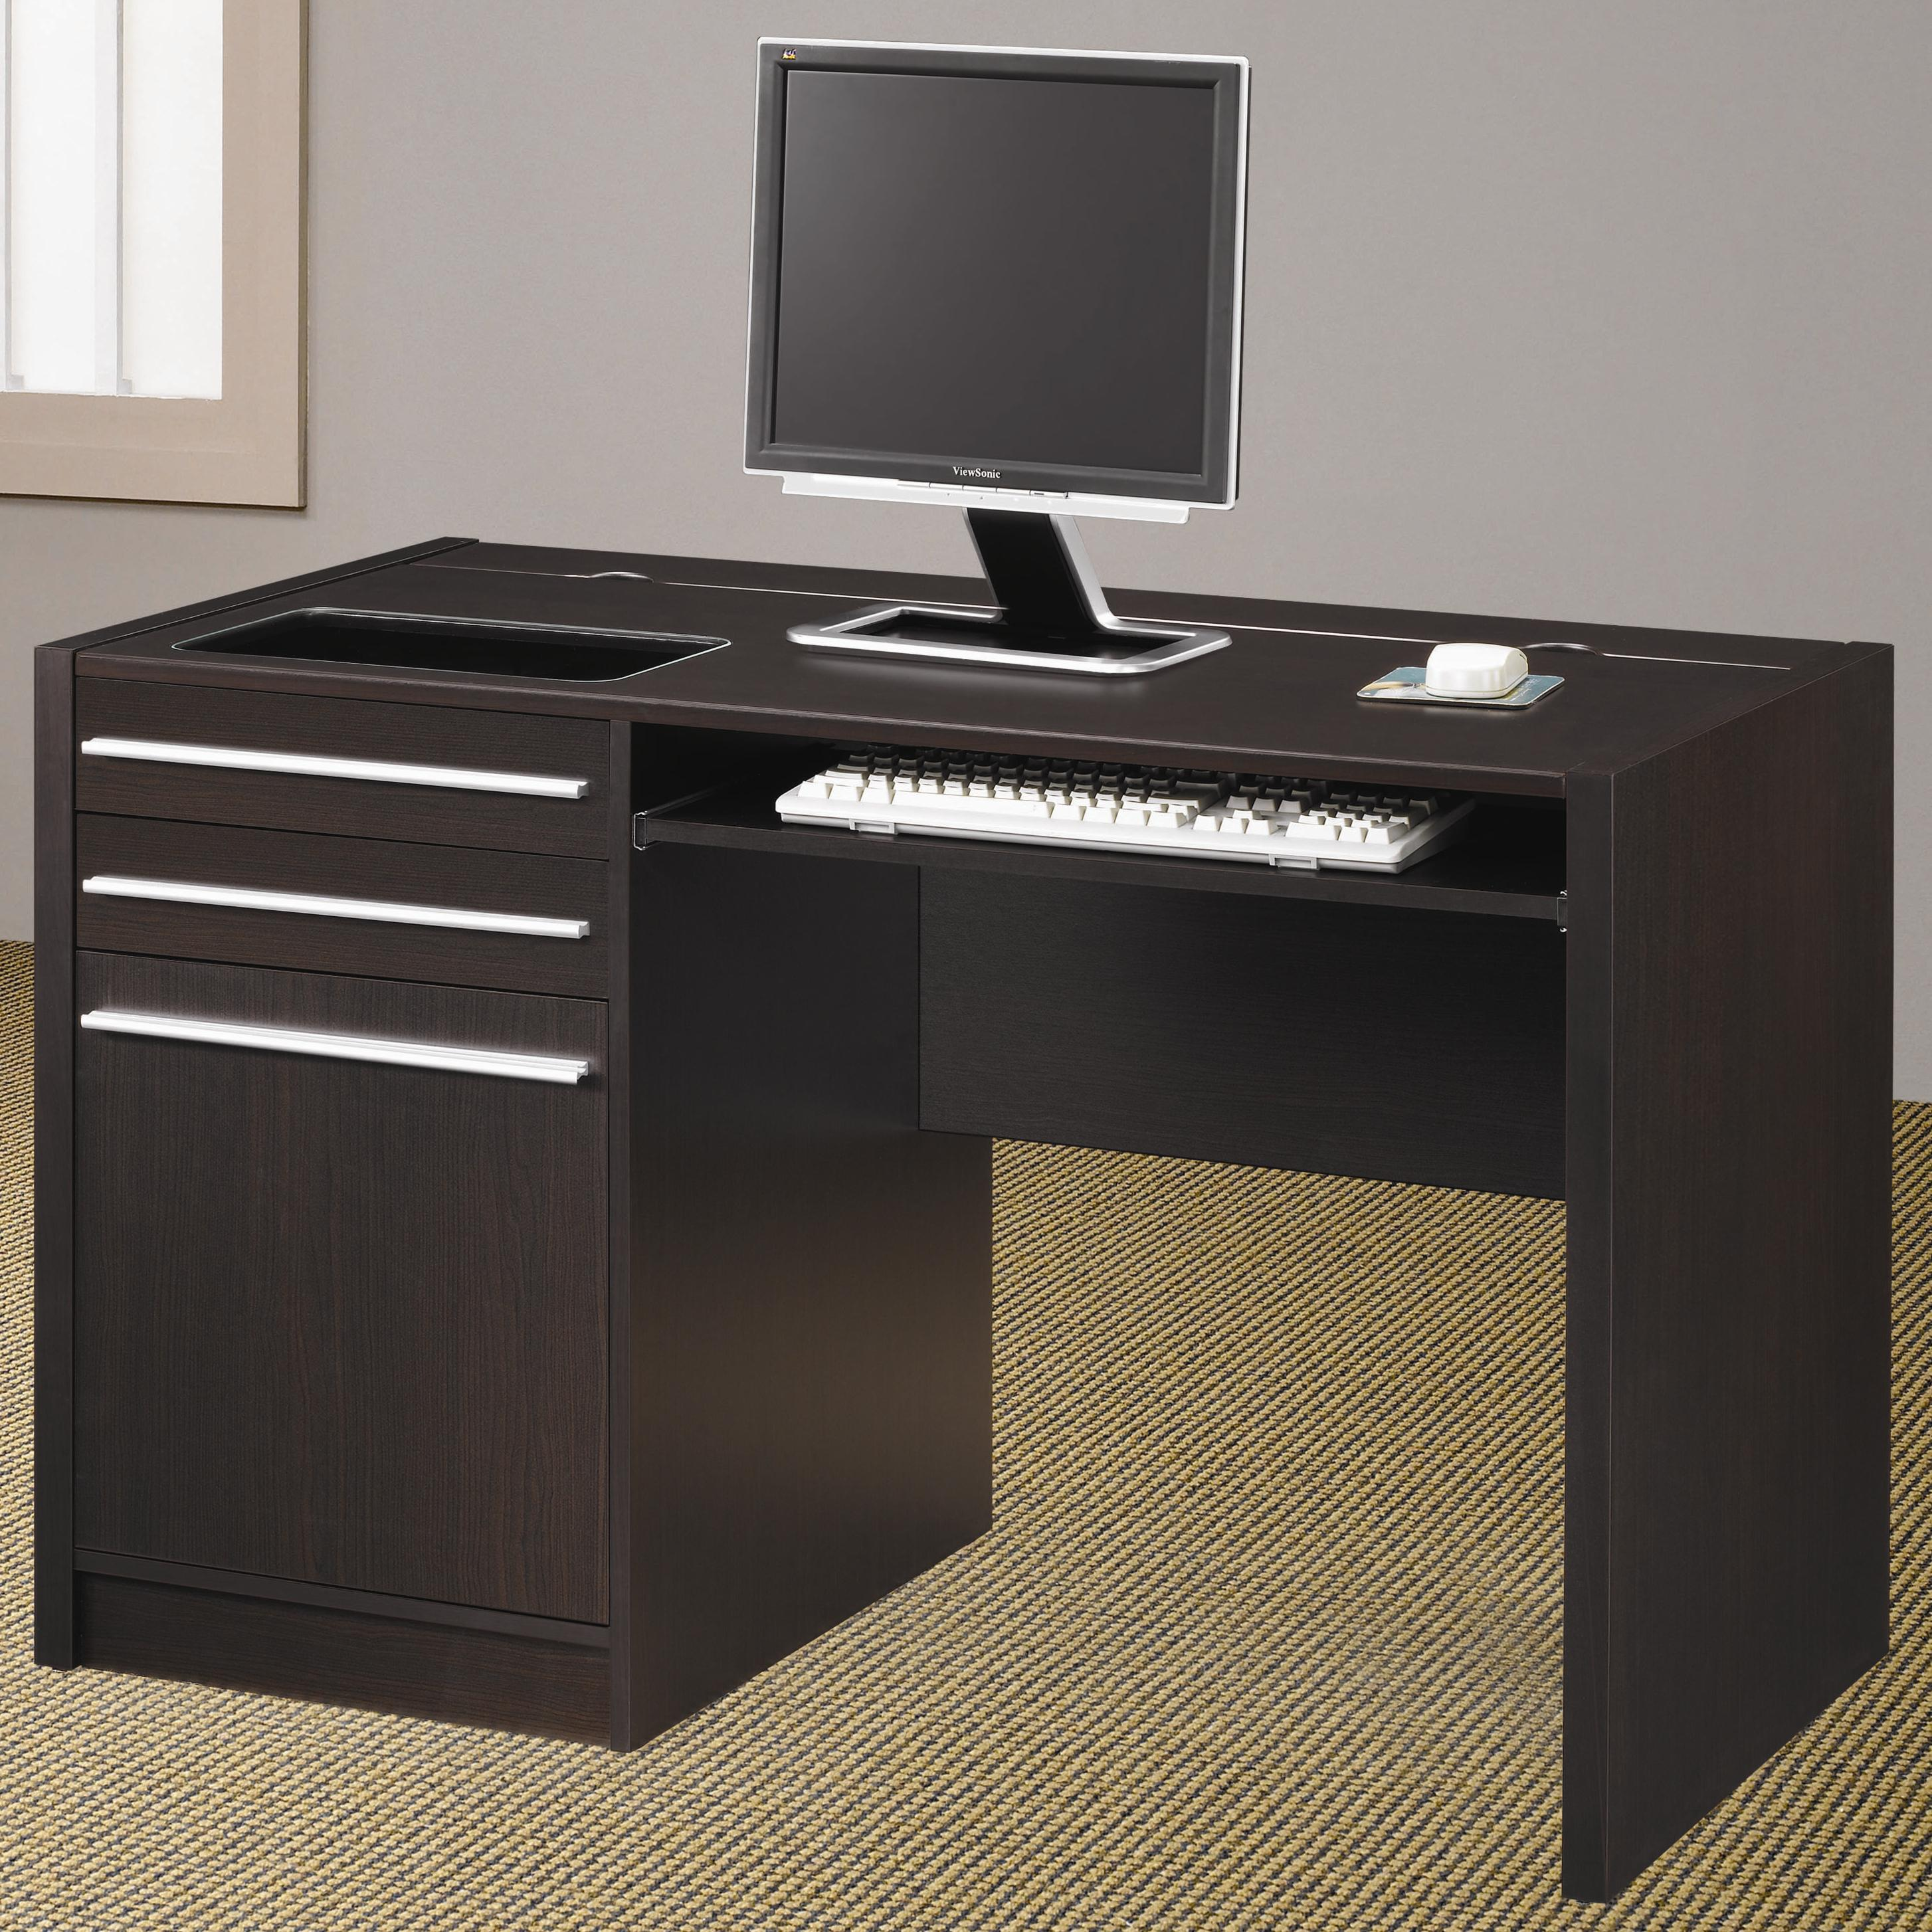 Ontario Desk by Coaster at Northeast Factory Direct